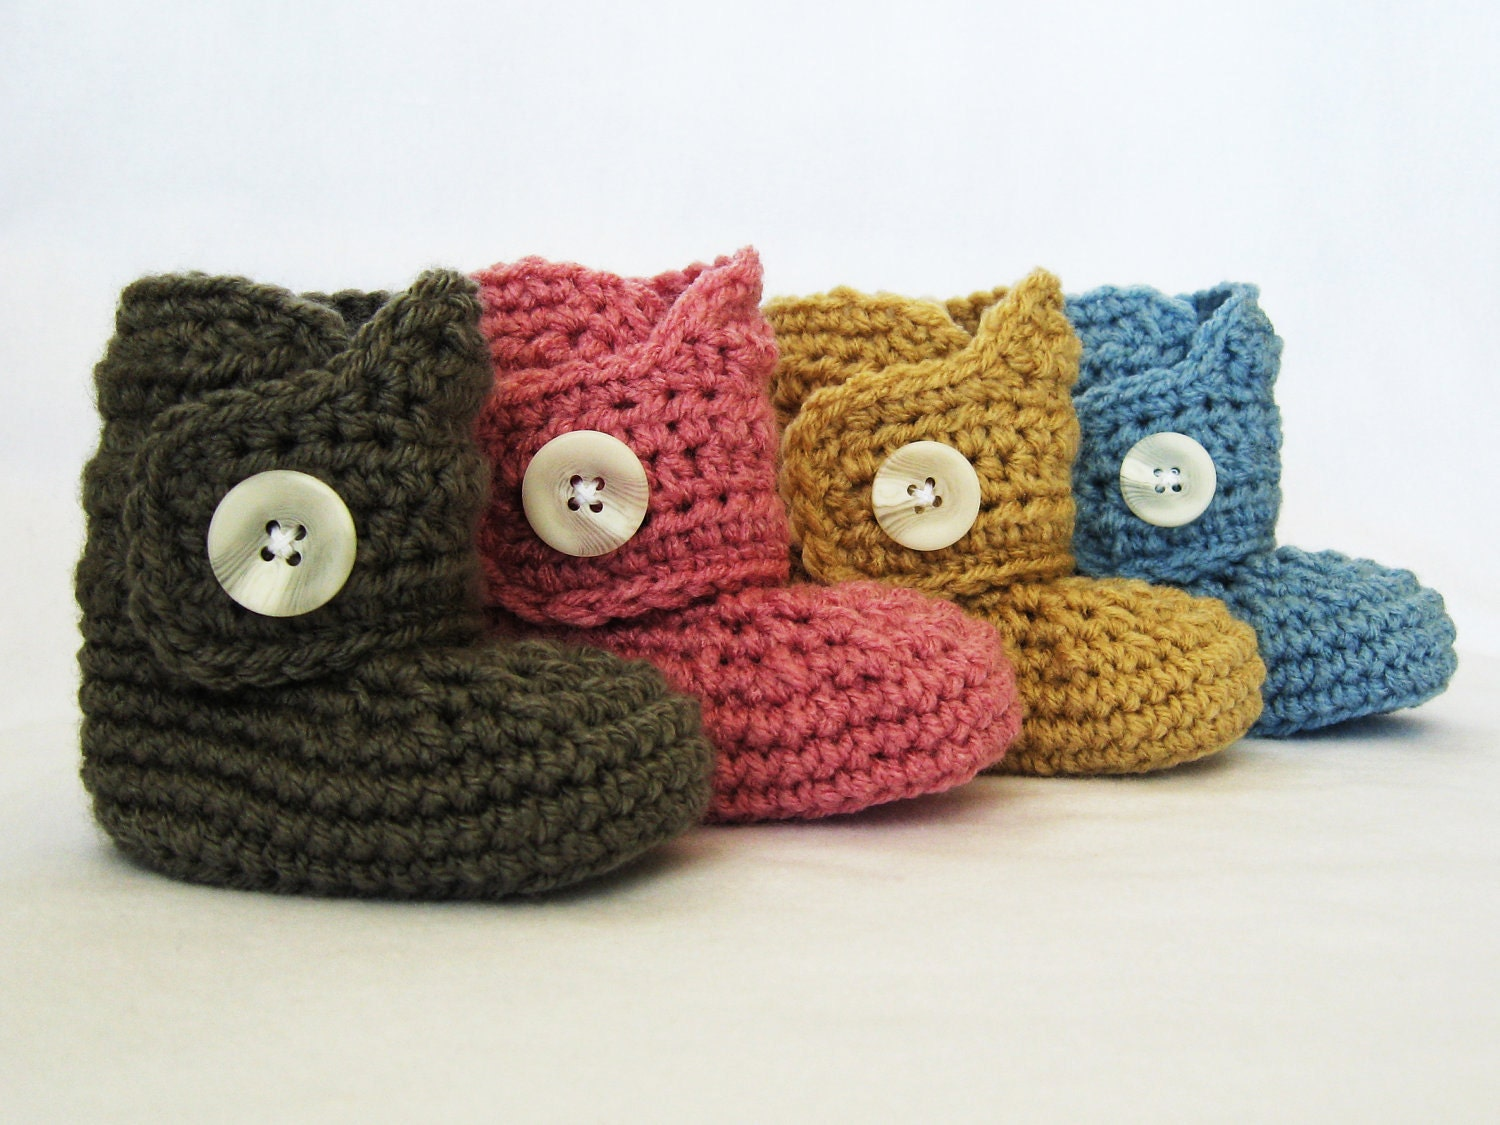 Baby Button Boots CROCHET PATTERN (4 sizes included: newborn-24 months) Permission to sell finished items